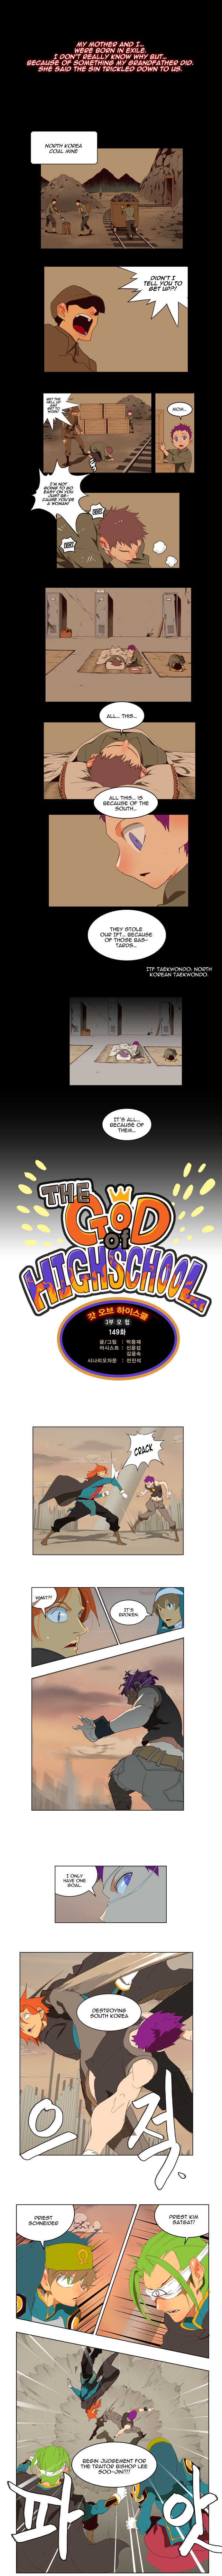 The God Of High School 149 Page 1